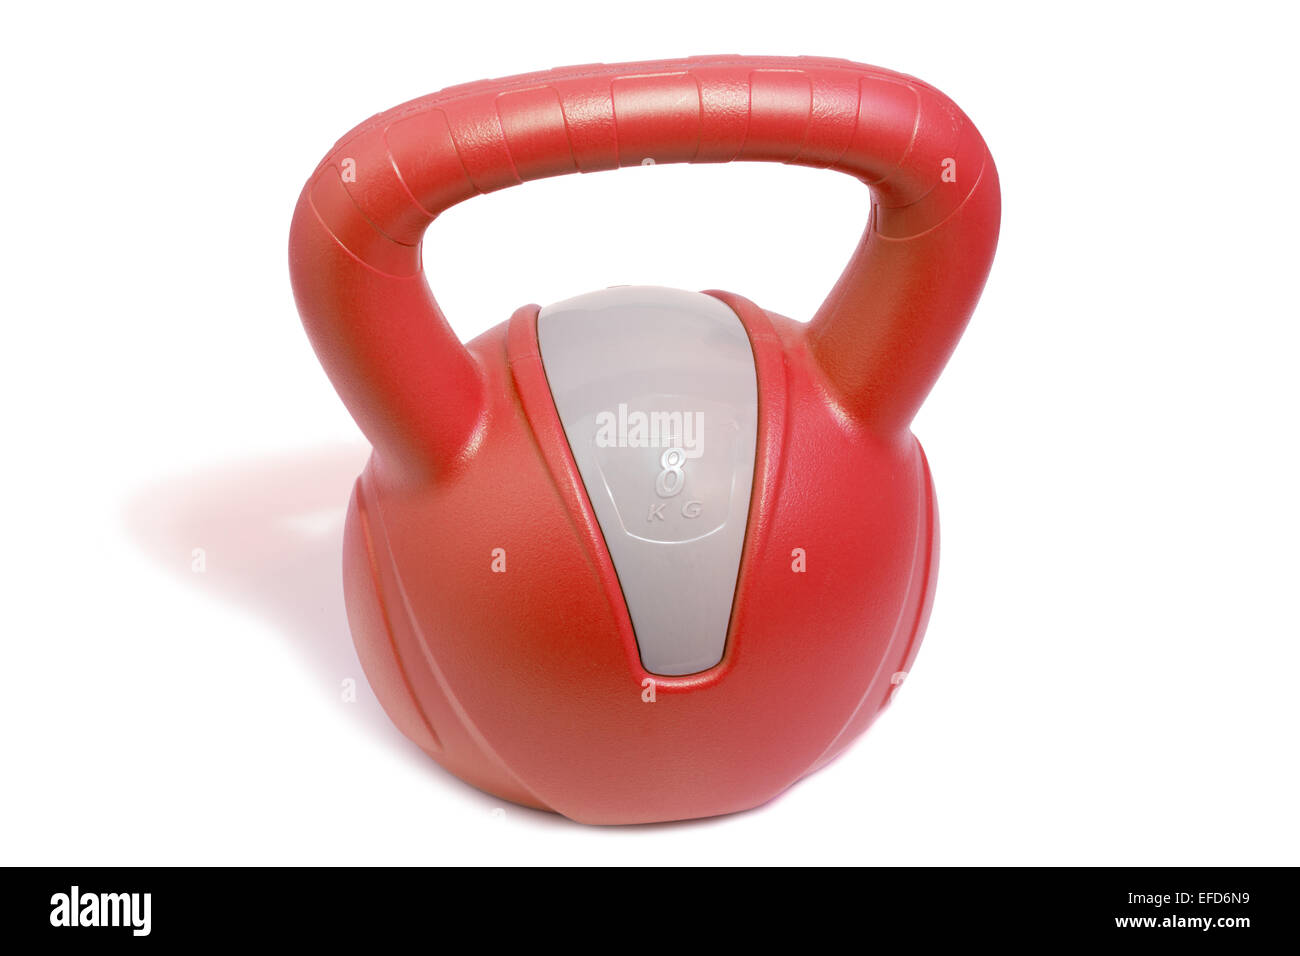 Closeup of a red 8 kg kettlebell, isolated on white background - Stock Image